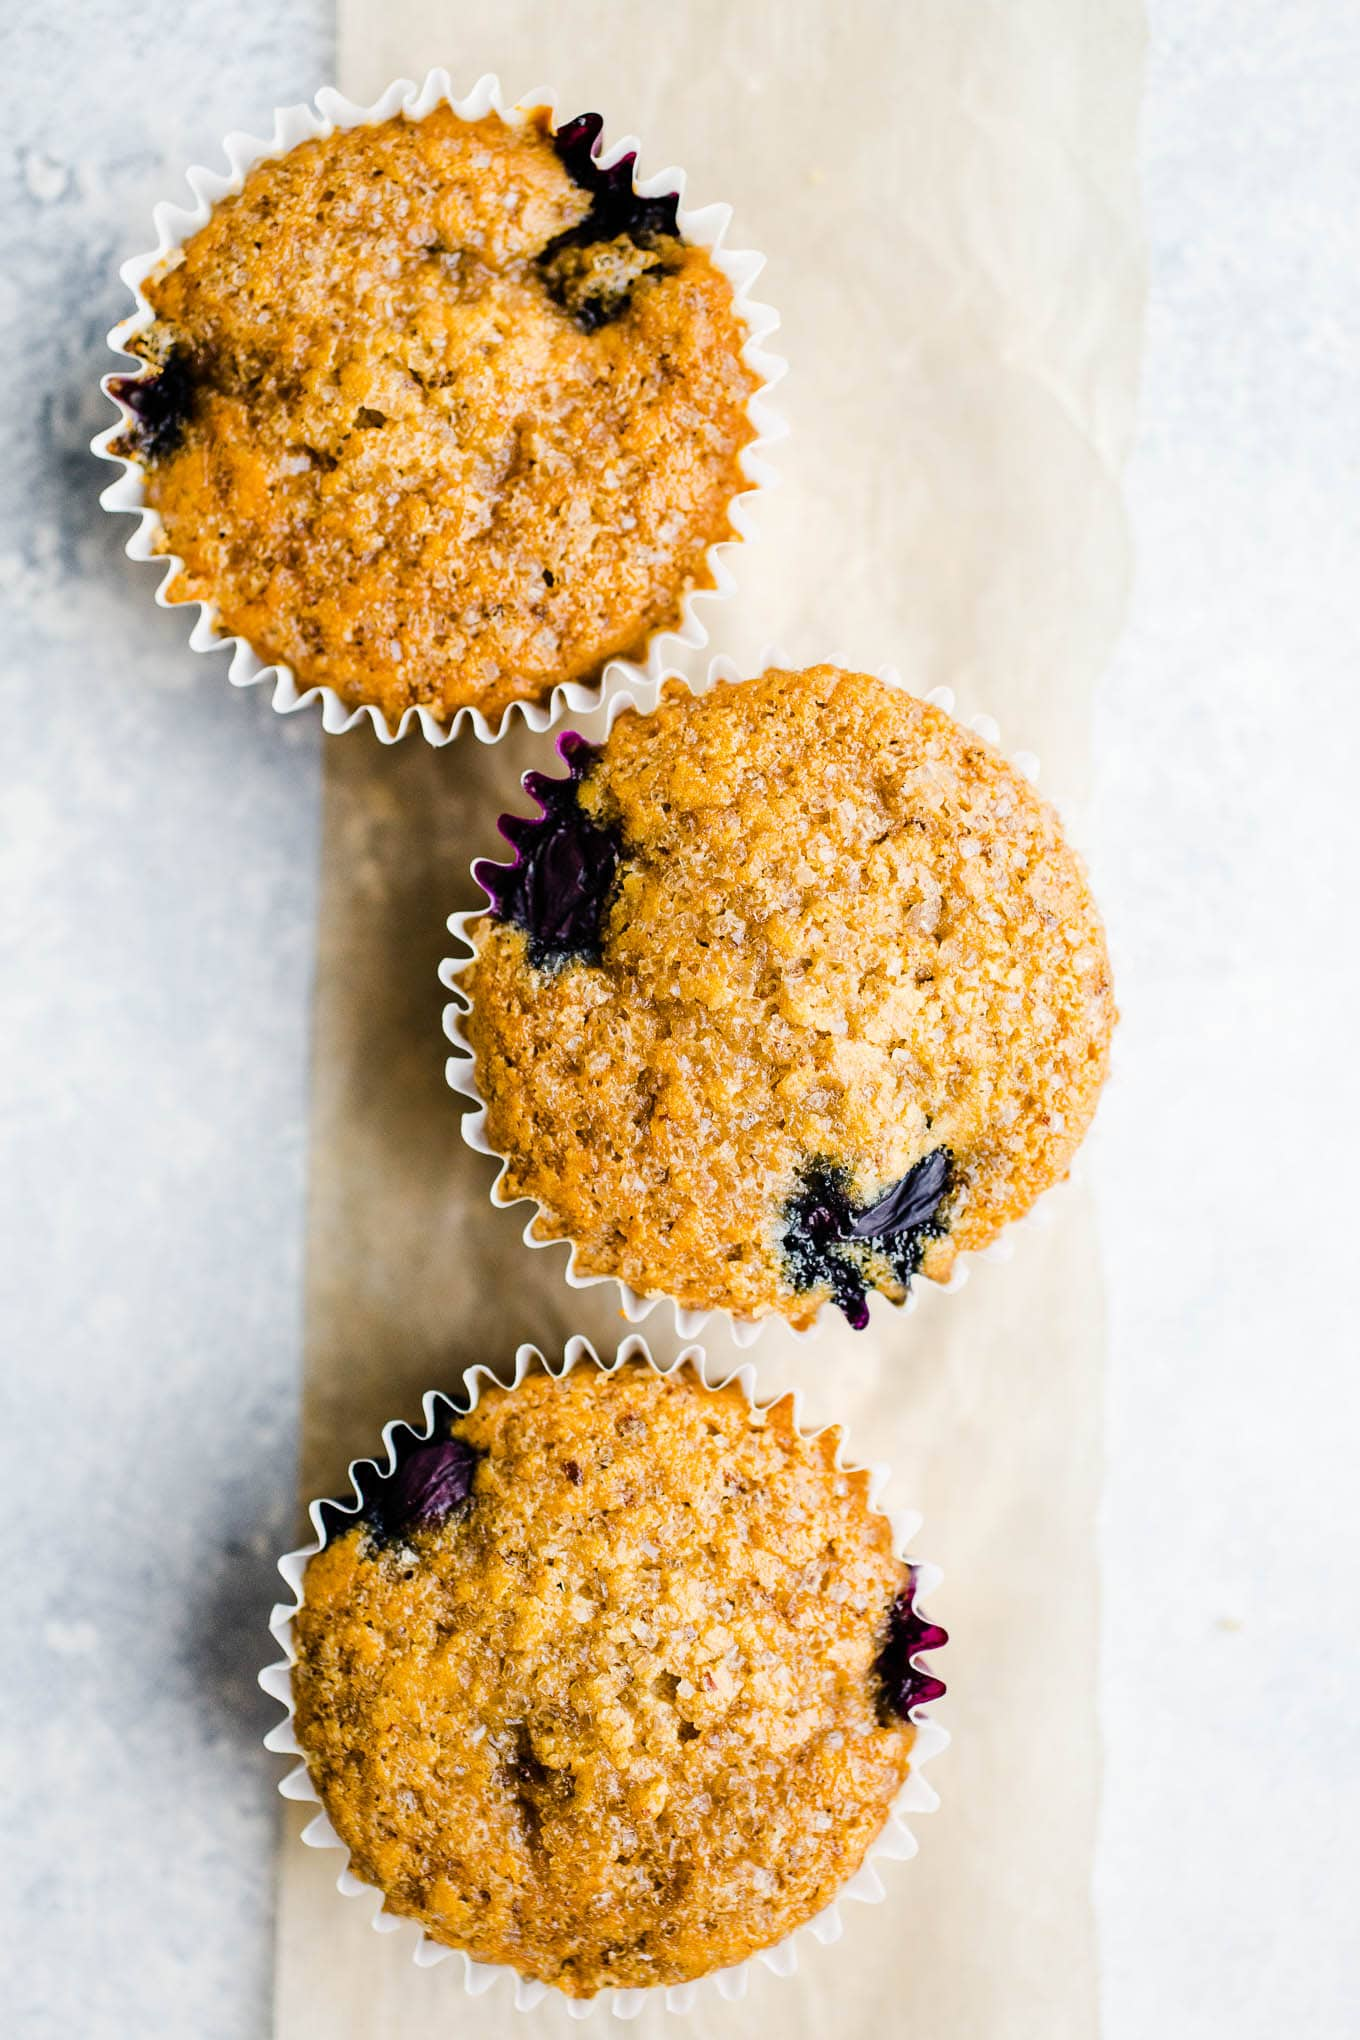 Blueberry muffins topped with cane sugar